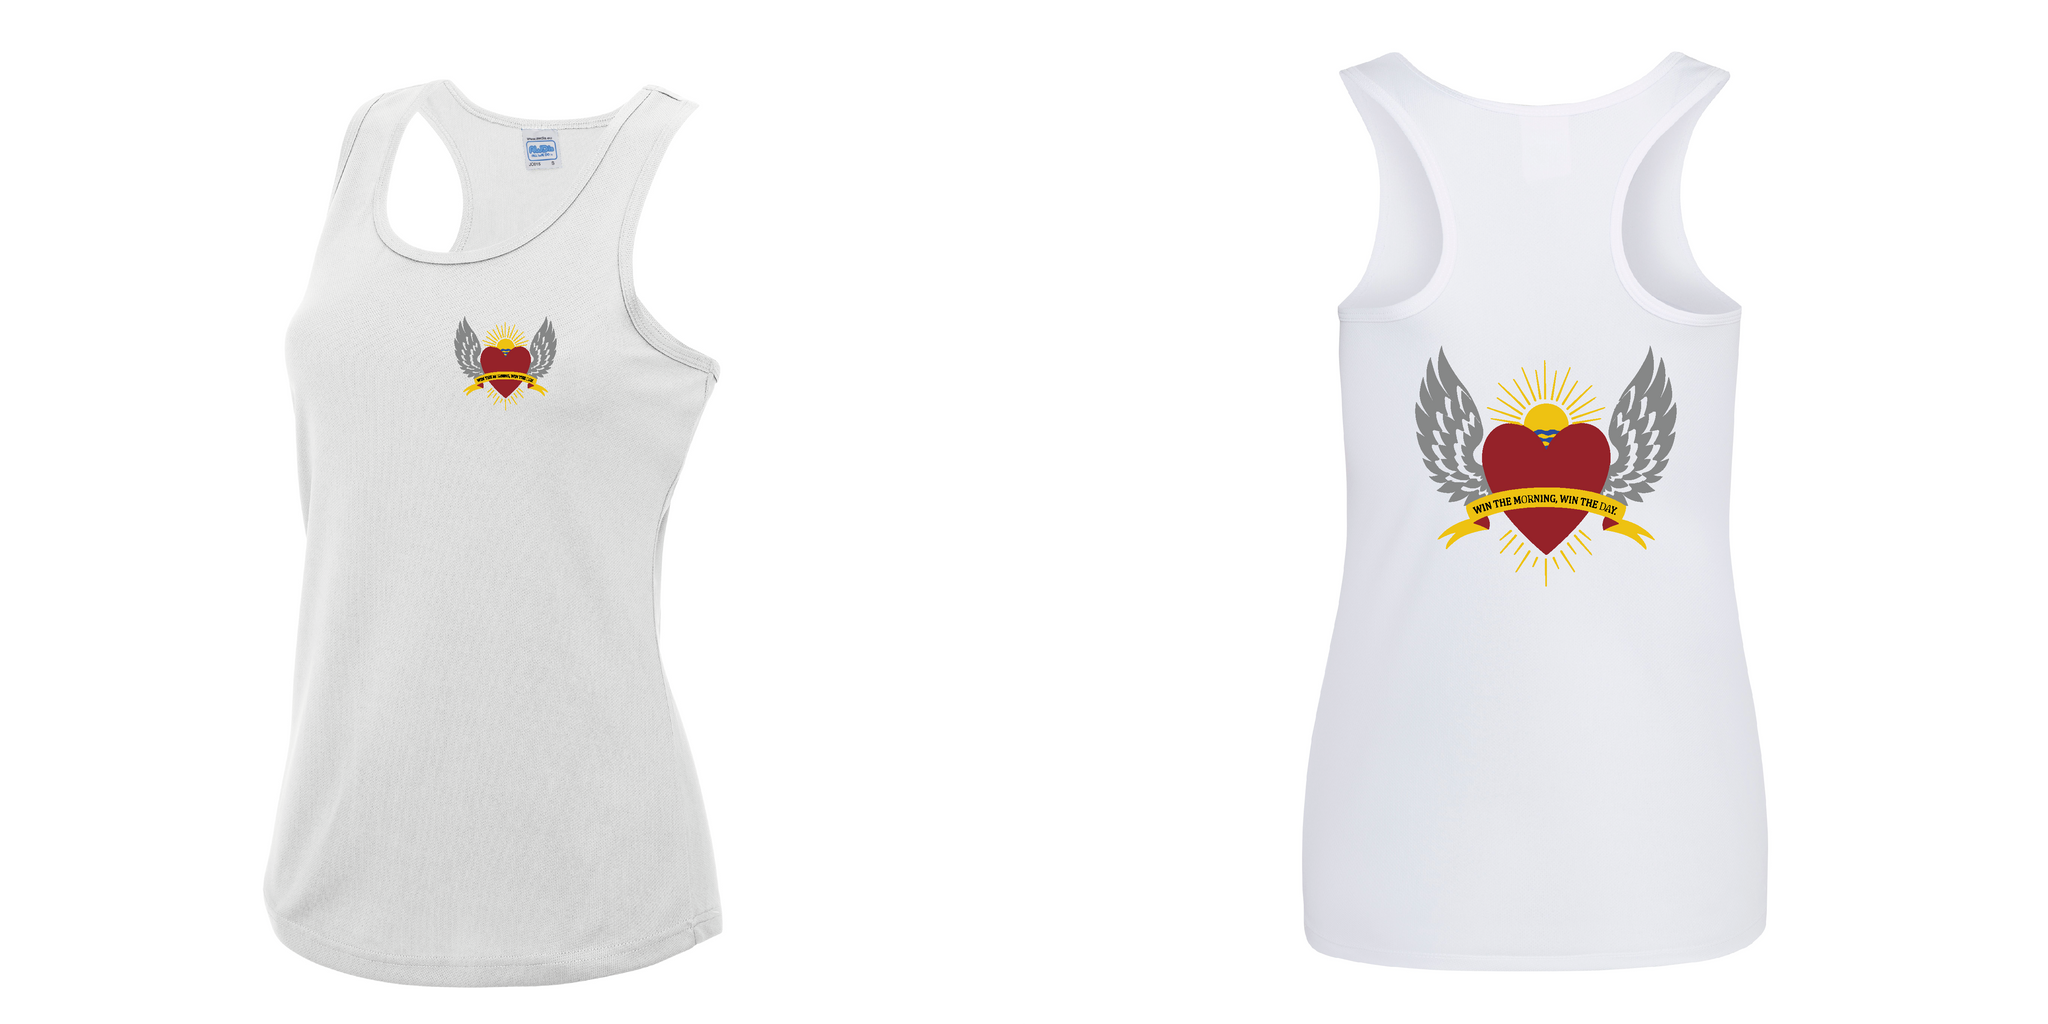 Ladies White Sports Vest